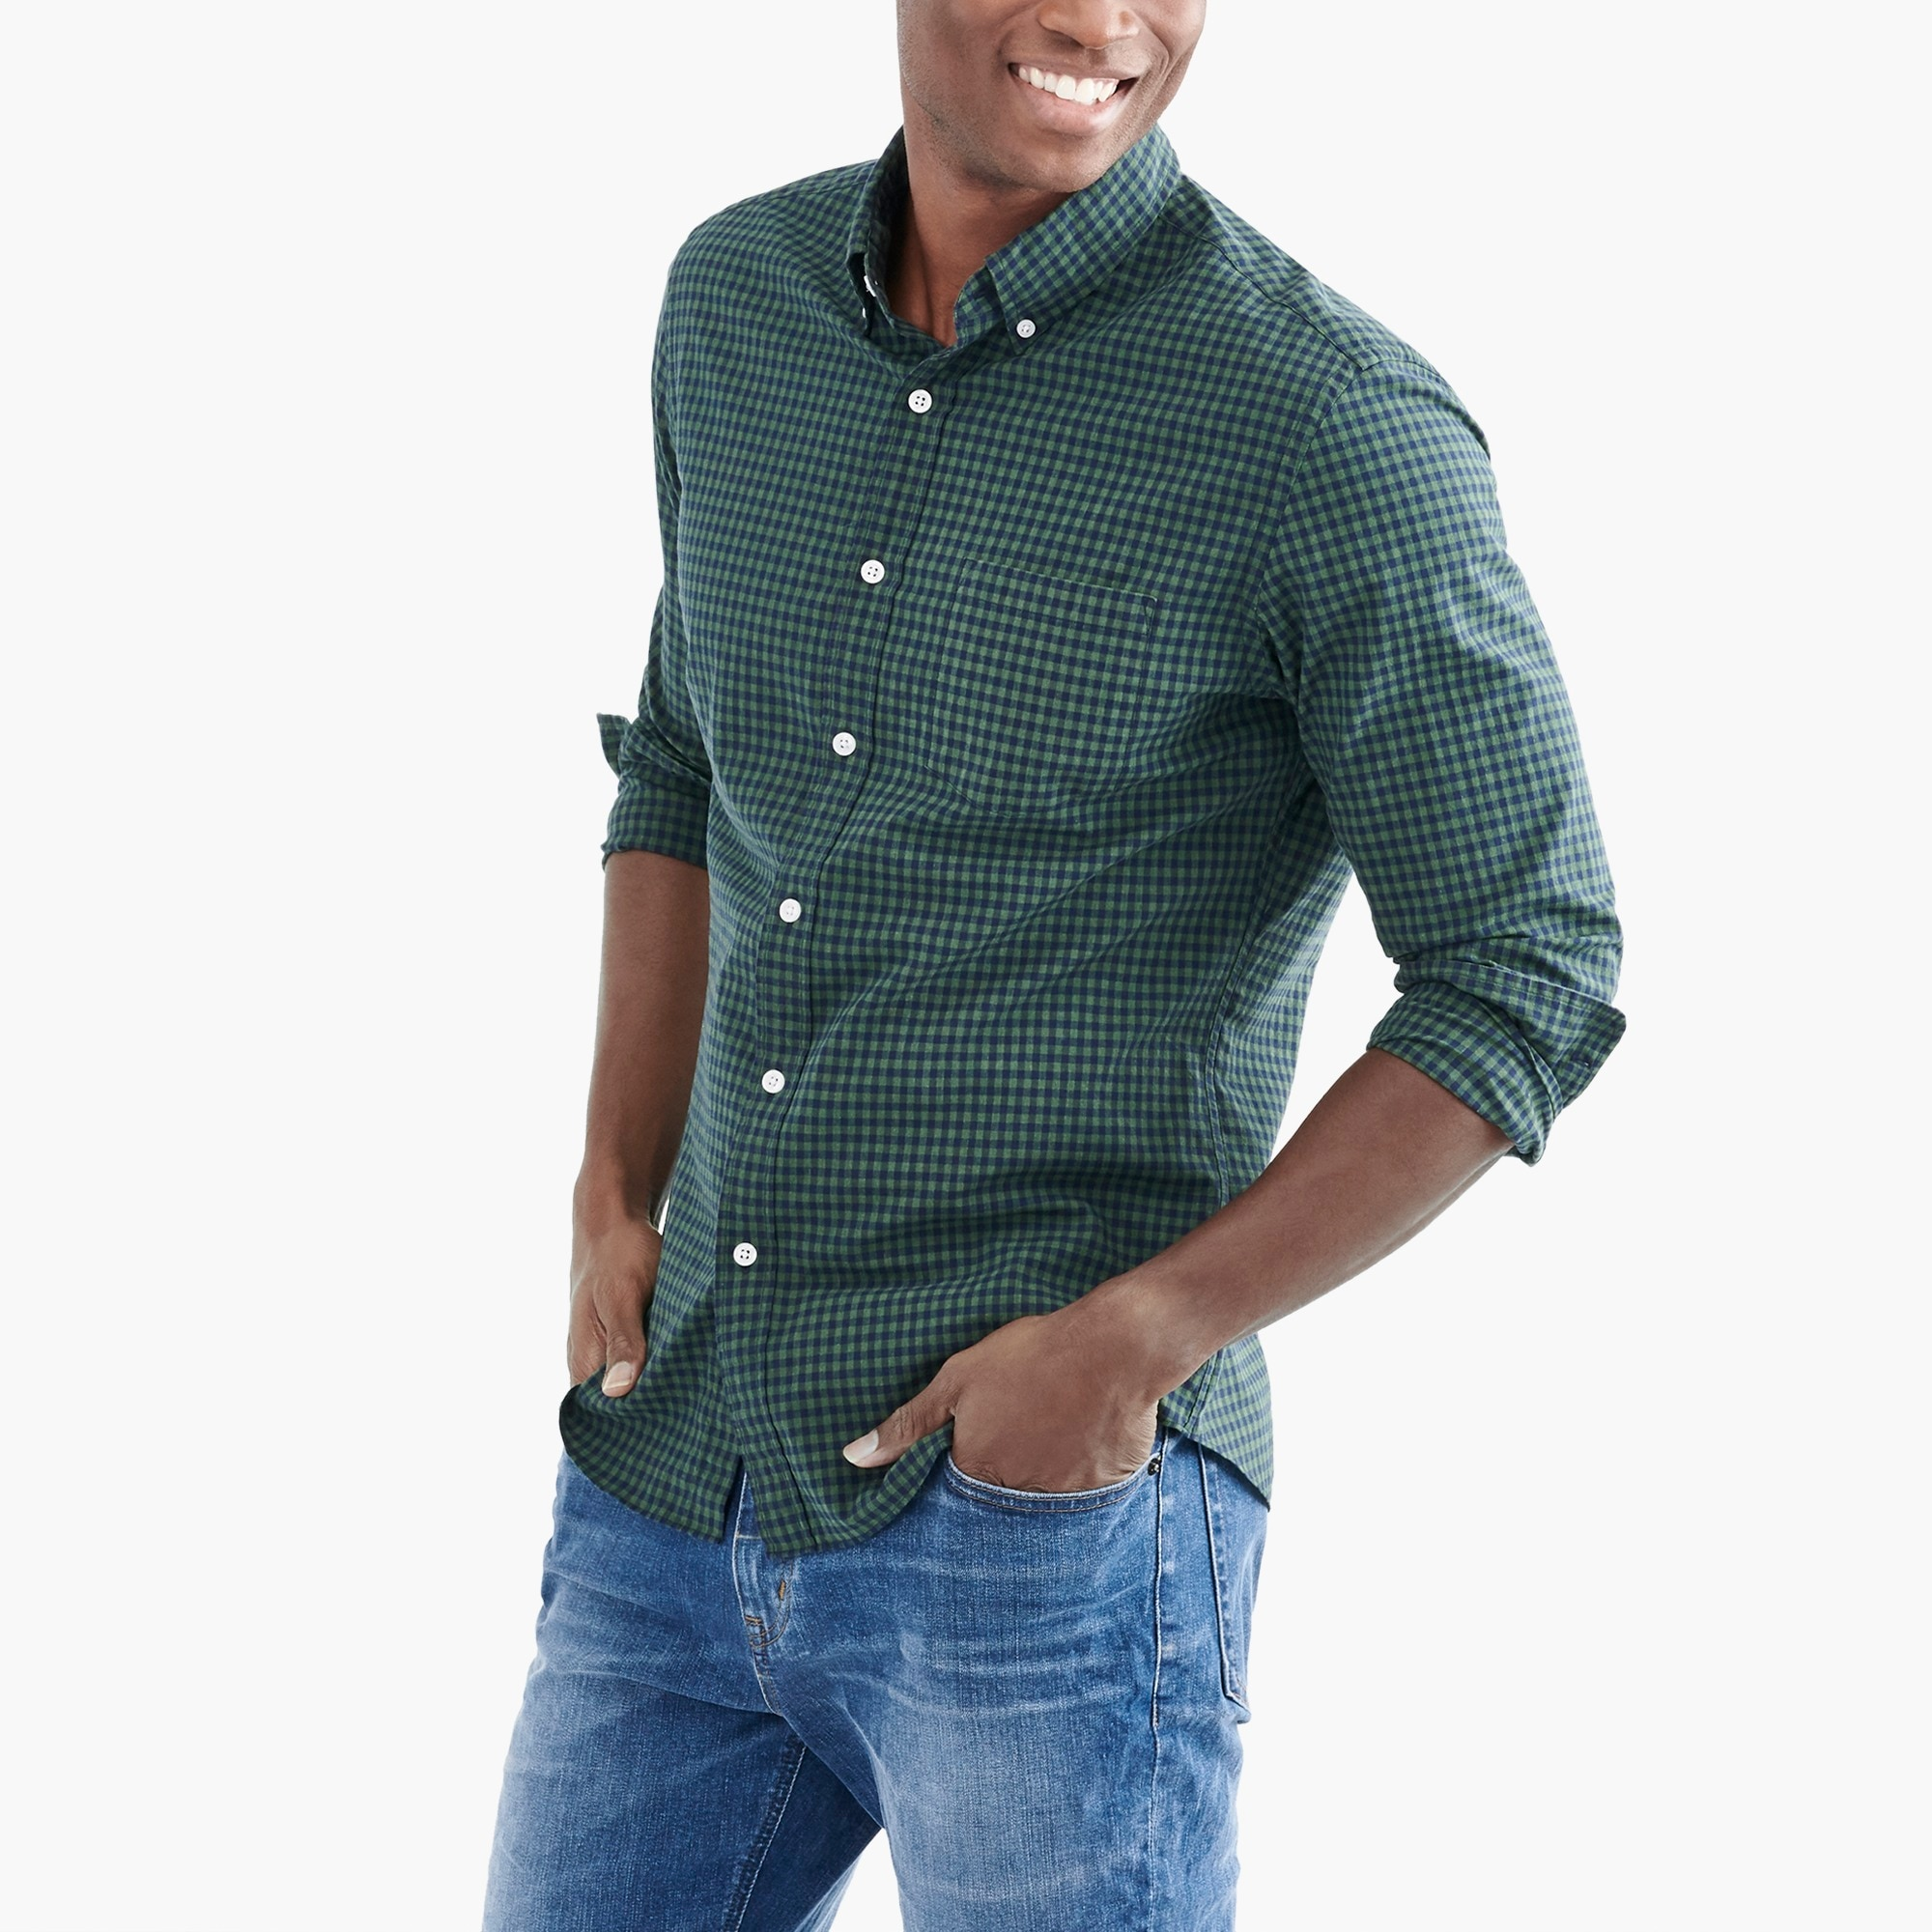 Image 1 for Slim flex heather washed shirt in gingham